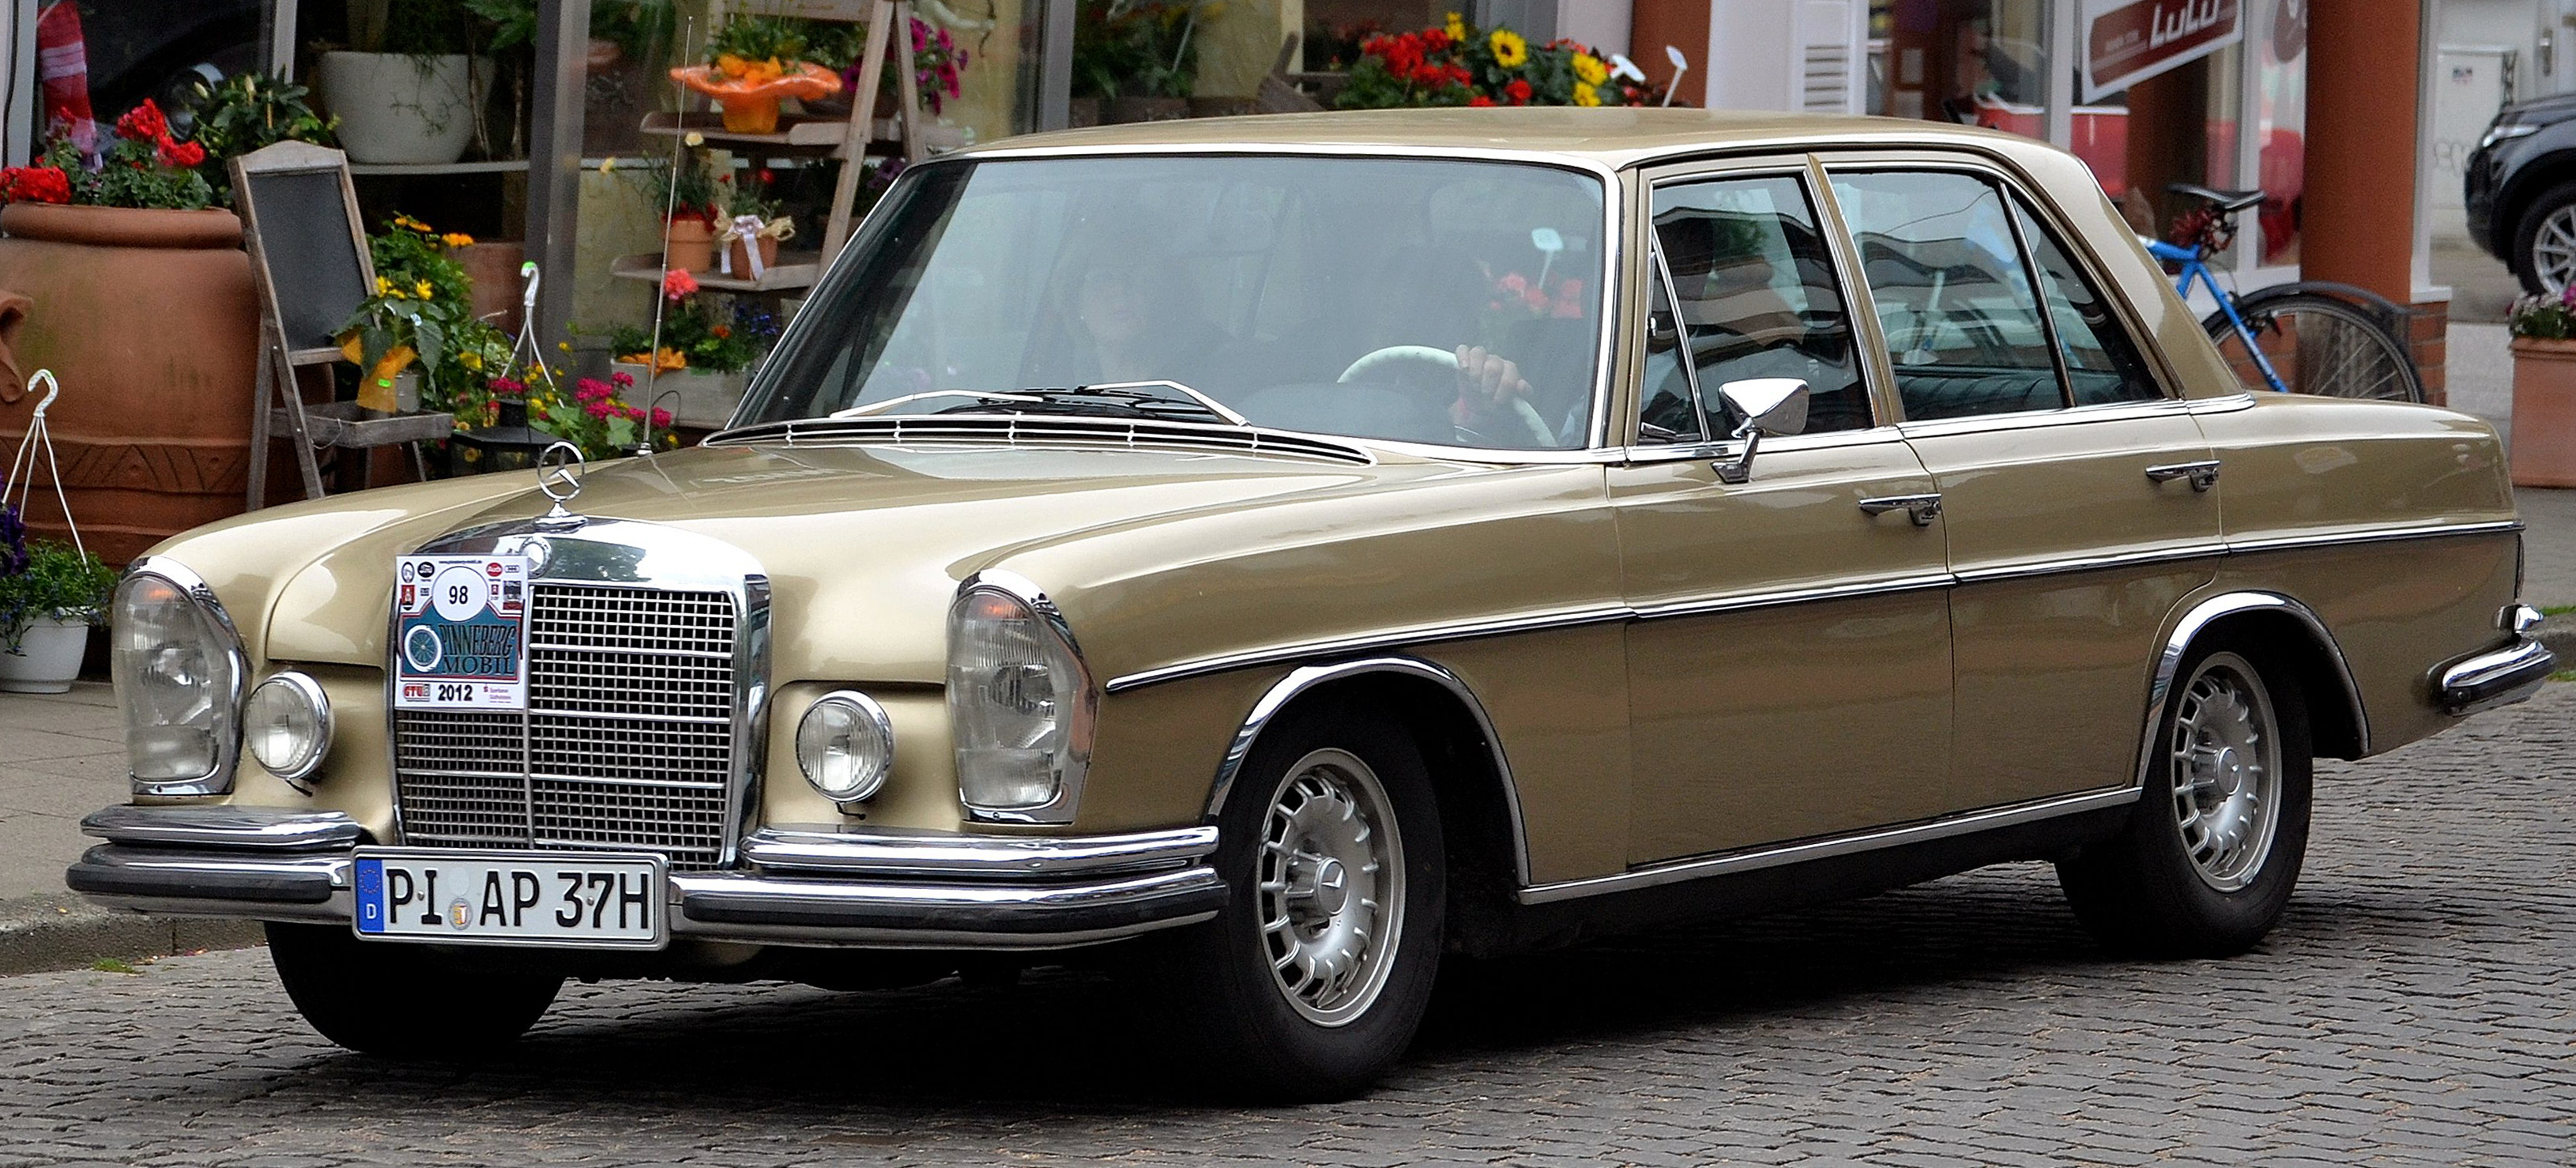 file mercedes benz 280 se w108 1971 wikimedia commons. Black Bedroom Furniture Sets. Home Design Ideas